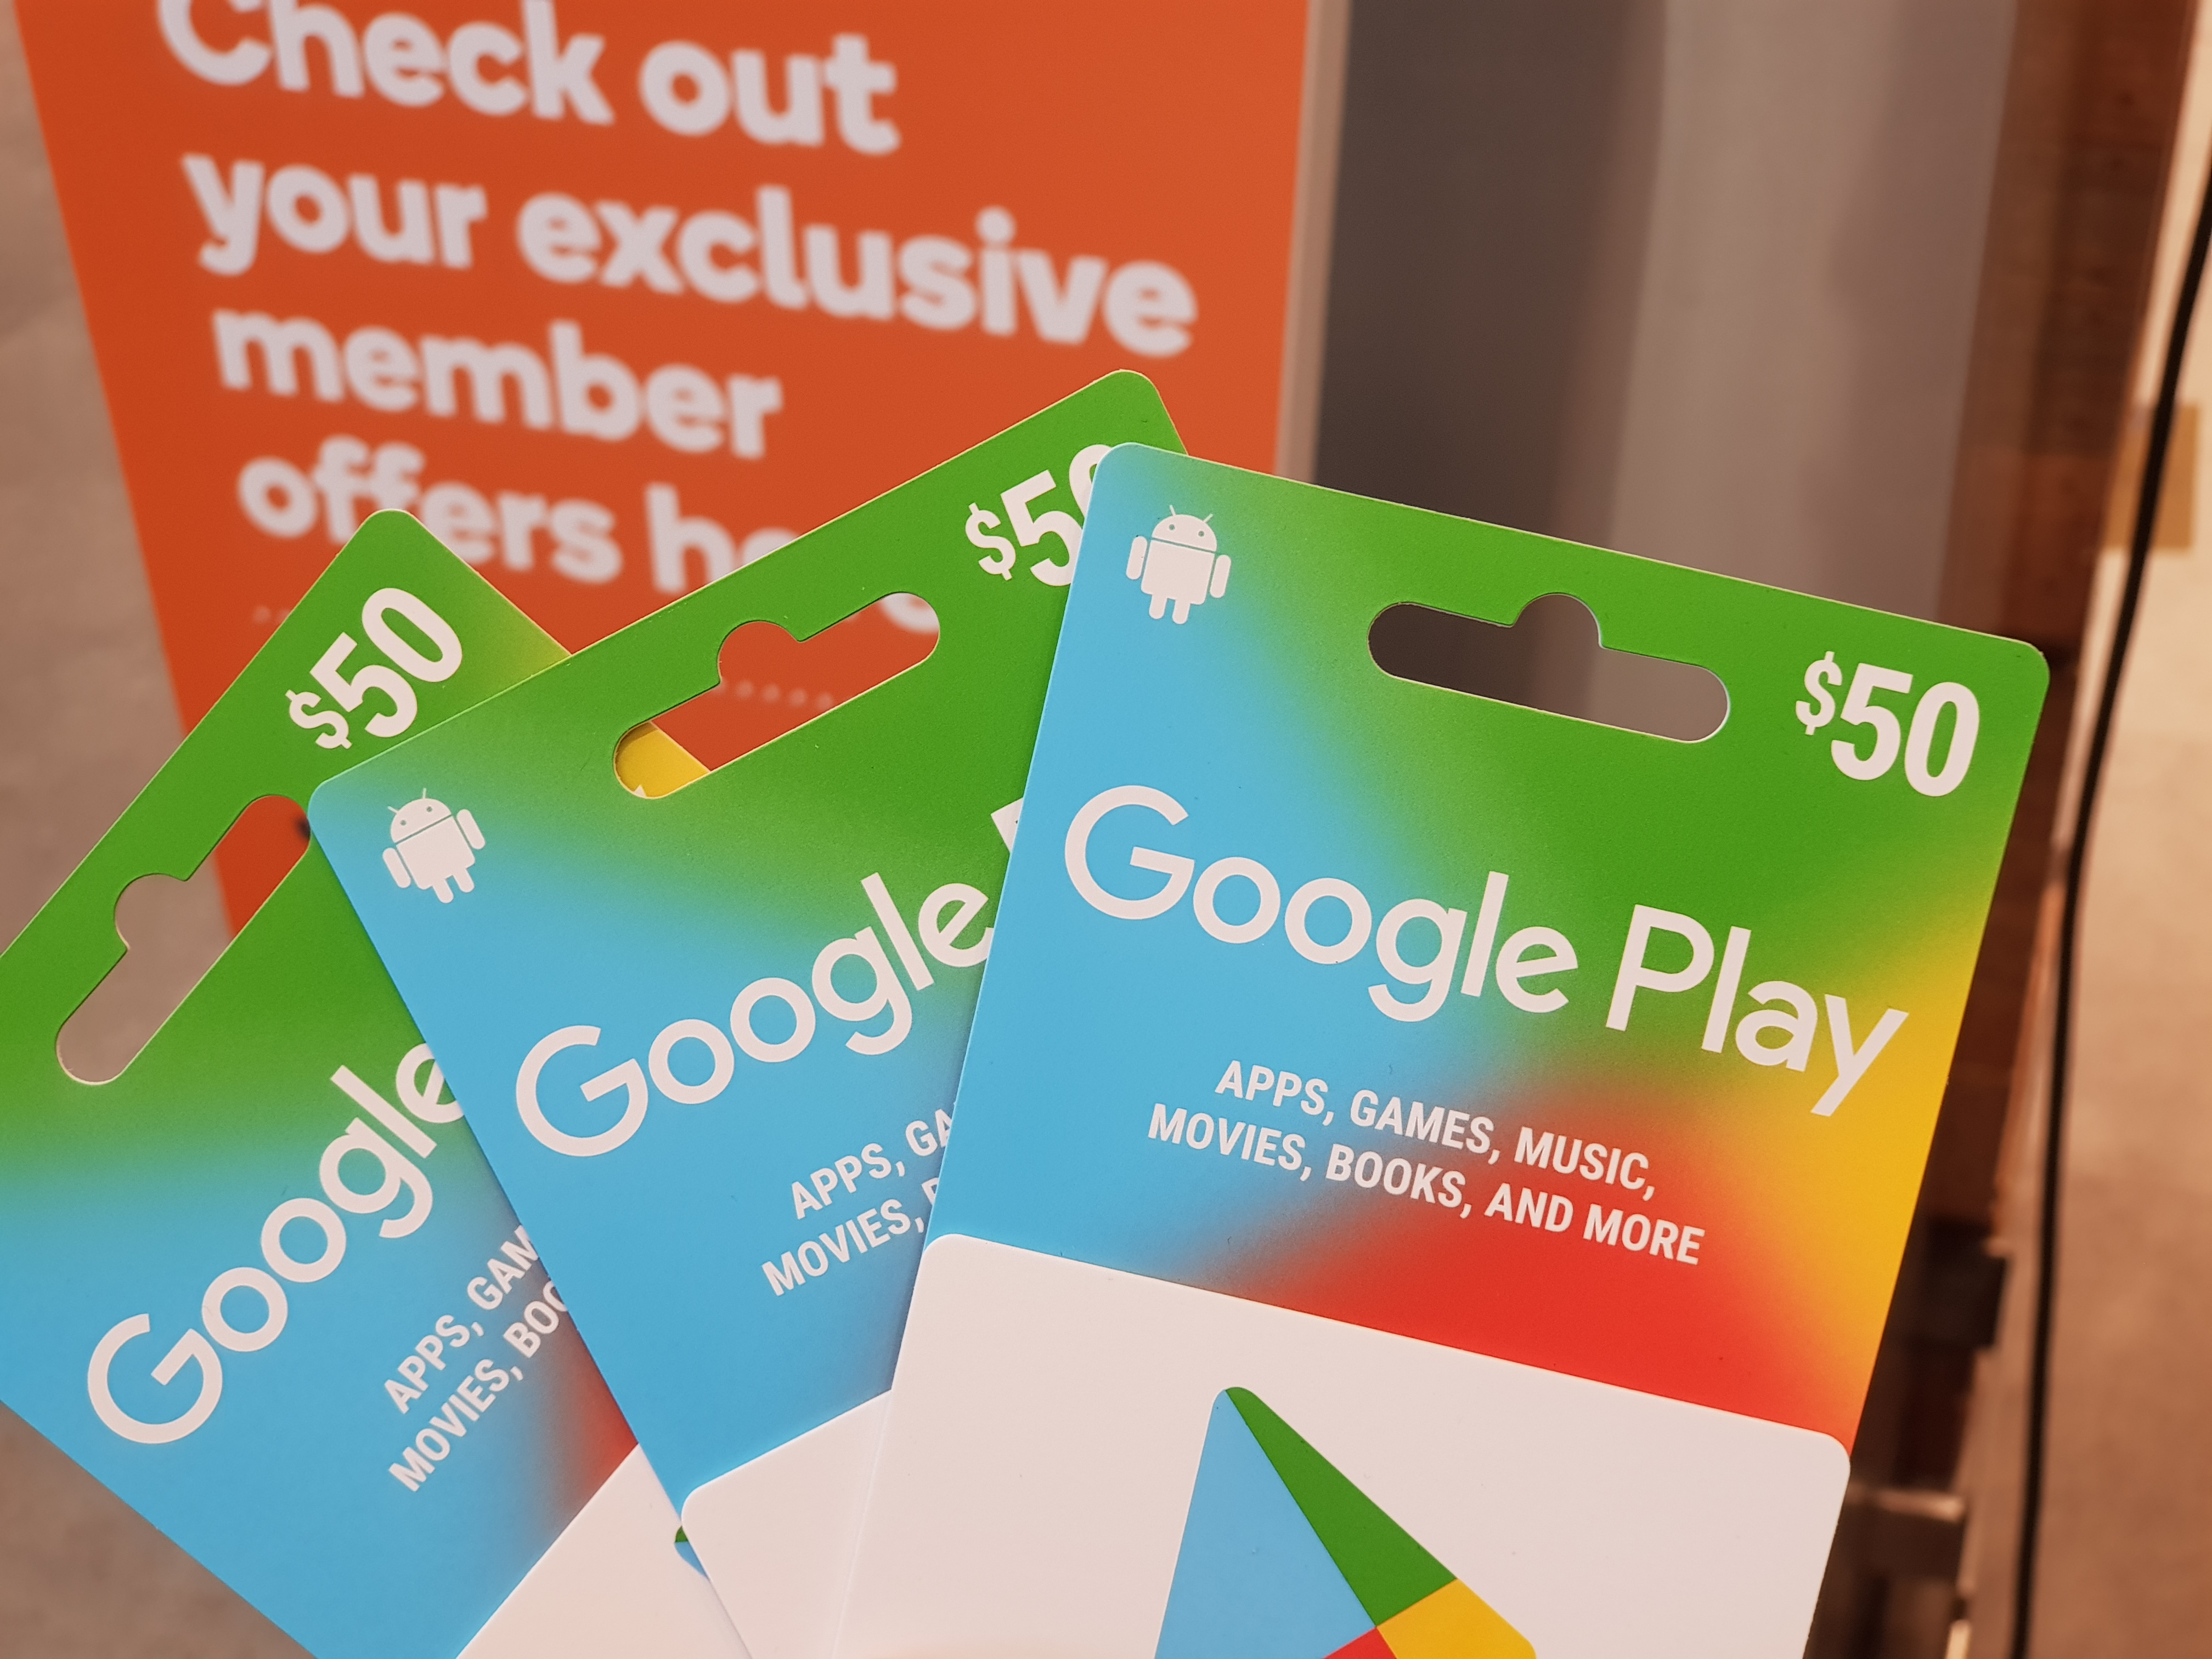 Gift Card Woolworths 2000 10 Woolworths Rewards Per 50 Google Play Gift Card Til 11